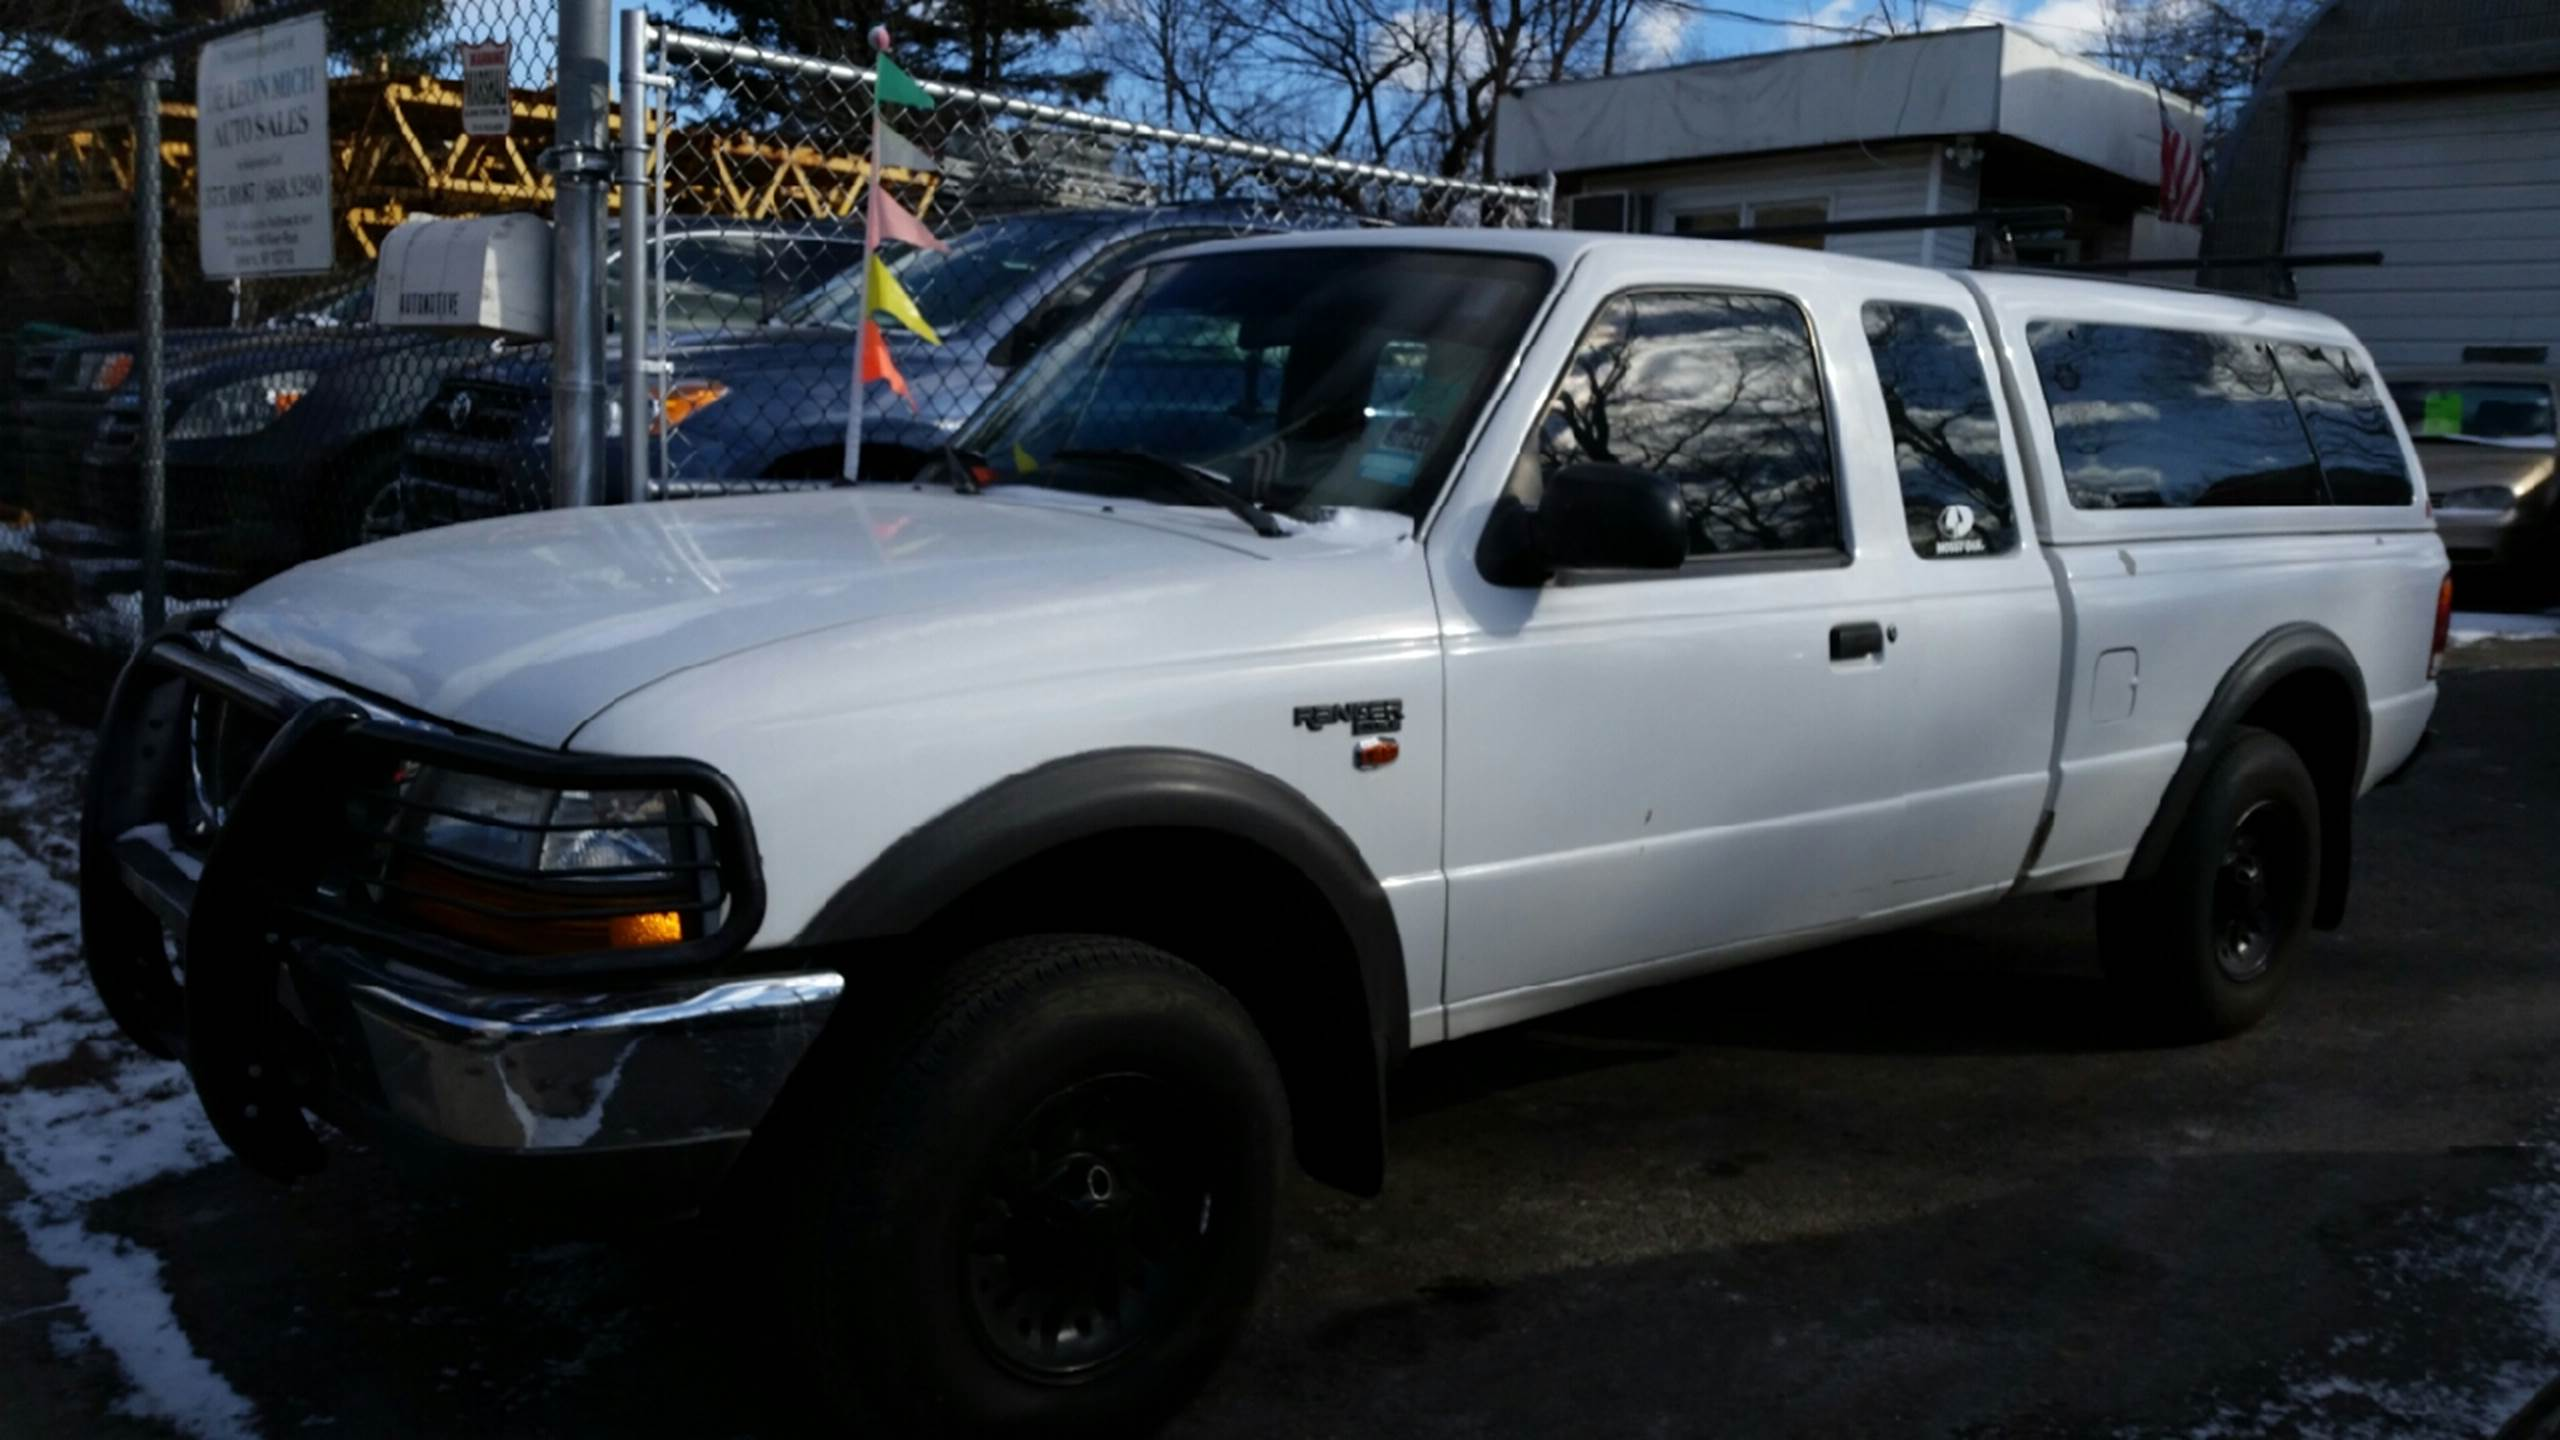 1999 Ford Ranger For Sale in De Queen AR Carsforsale